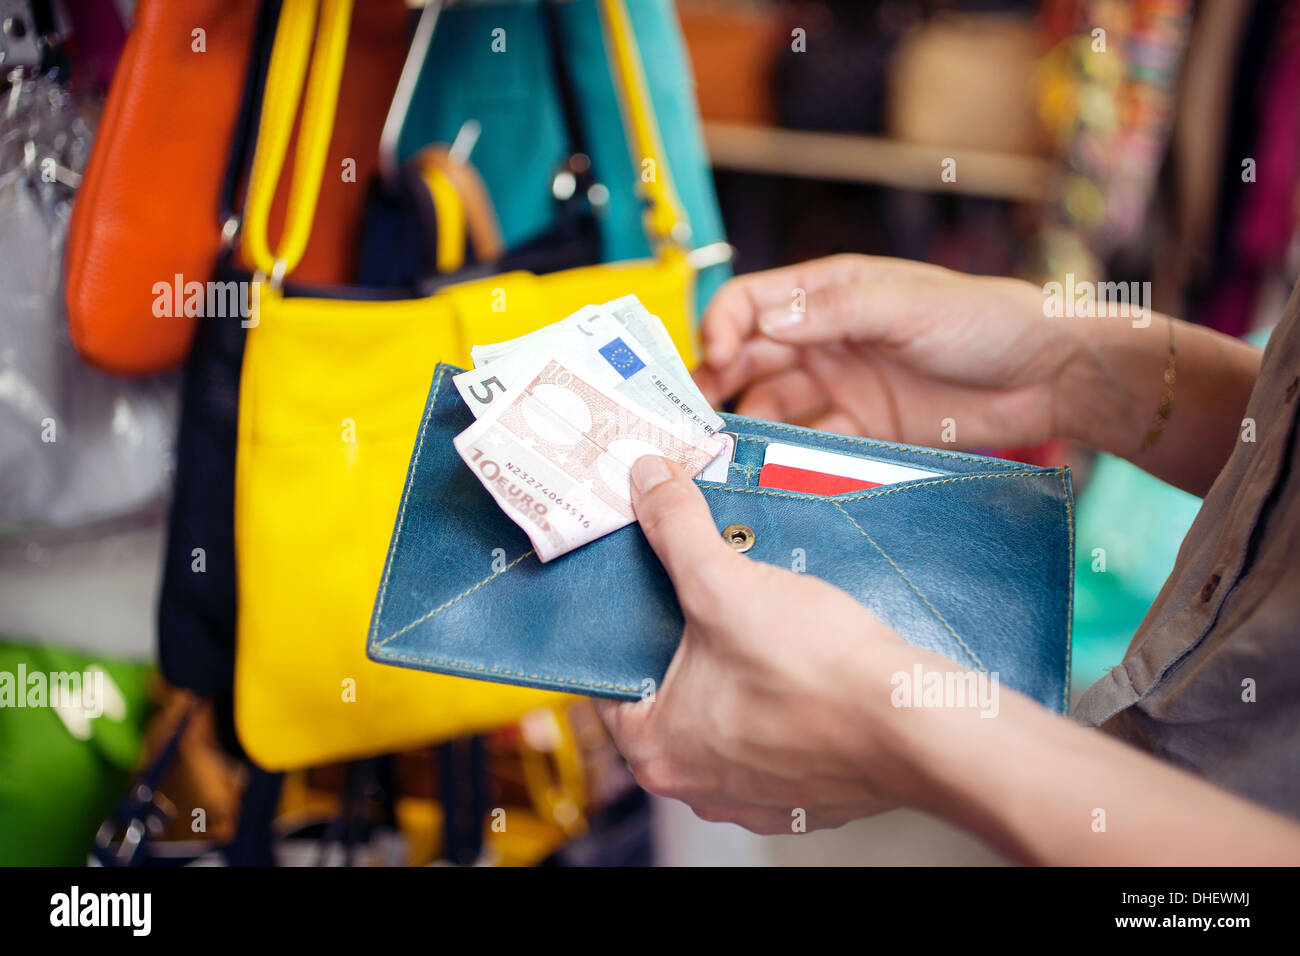 Young woman buying handbag, San Lorenzo market, Florence, Tuscany, Italy - Stock Image